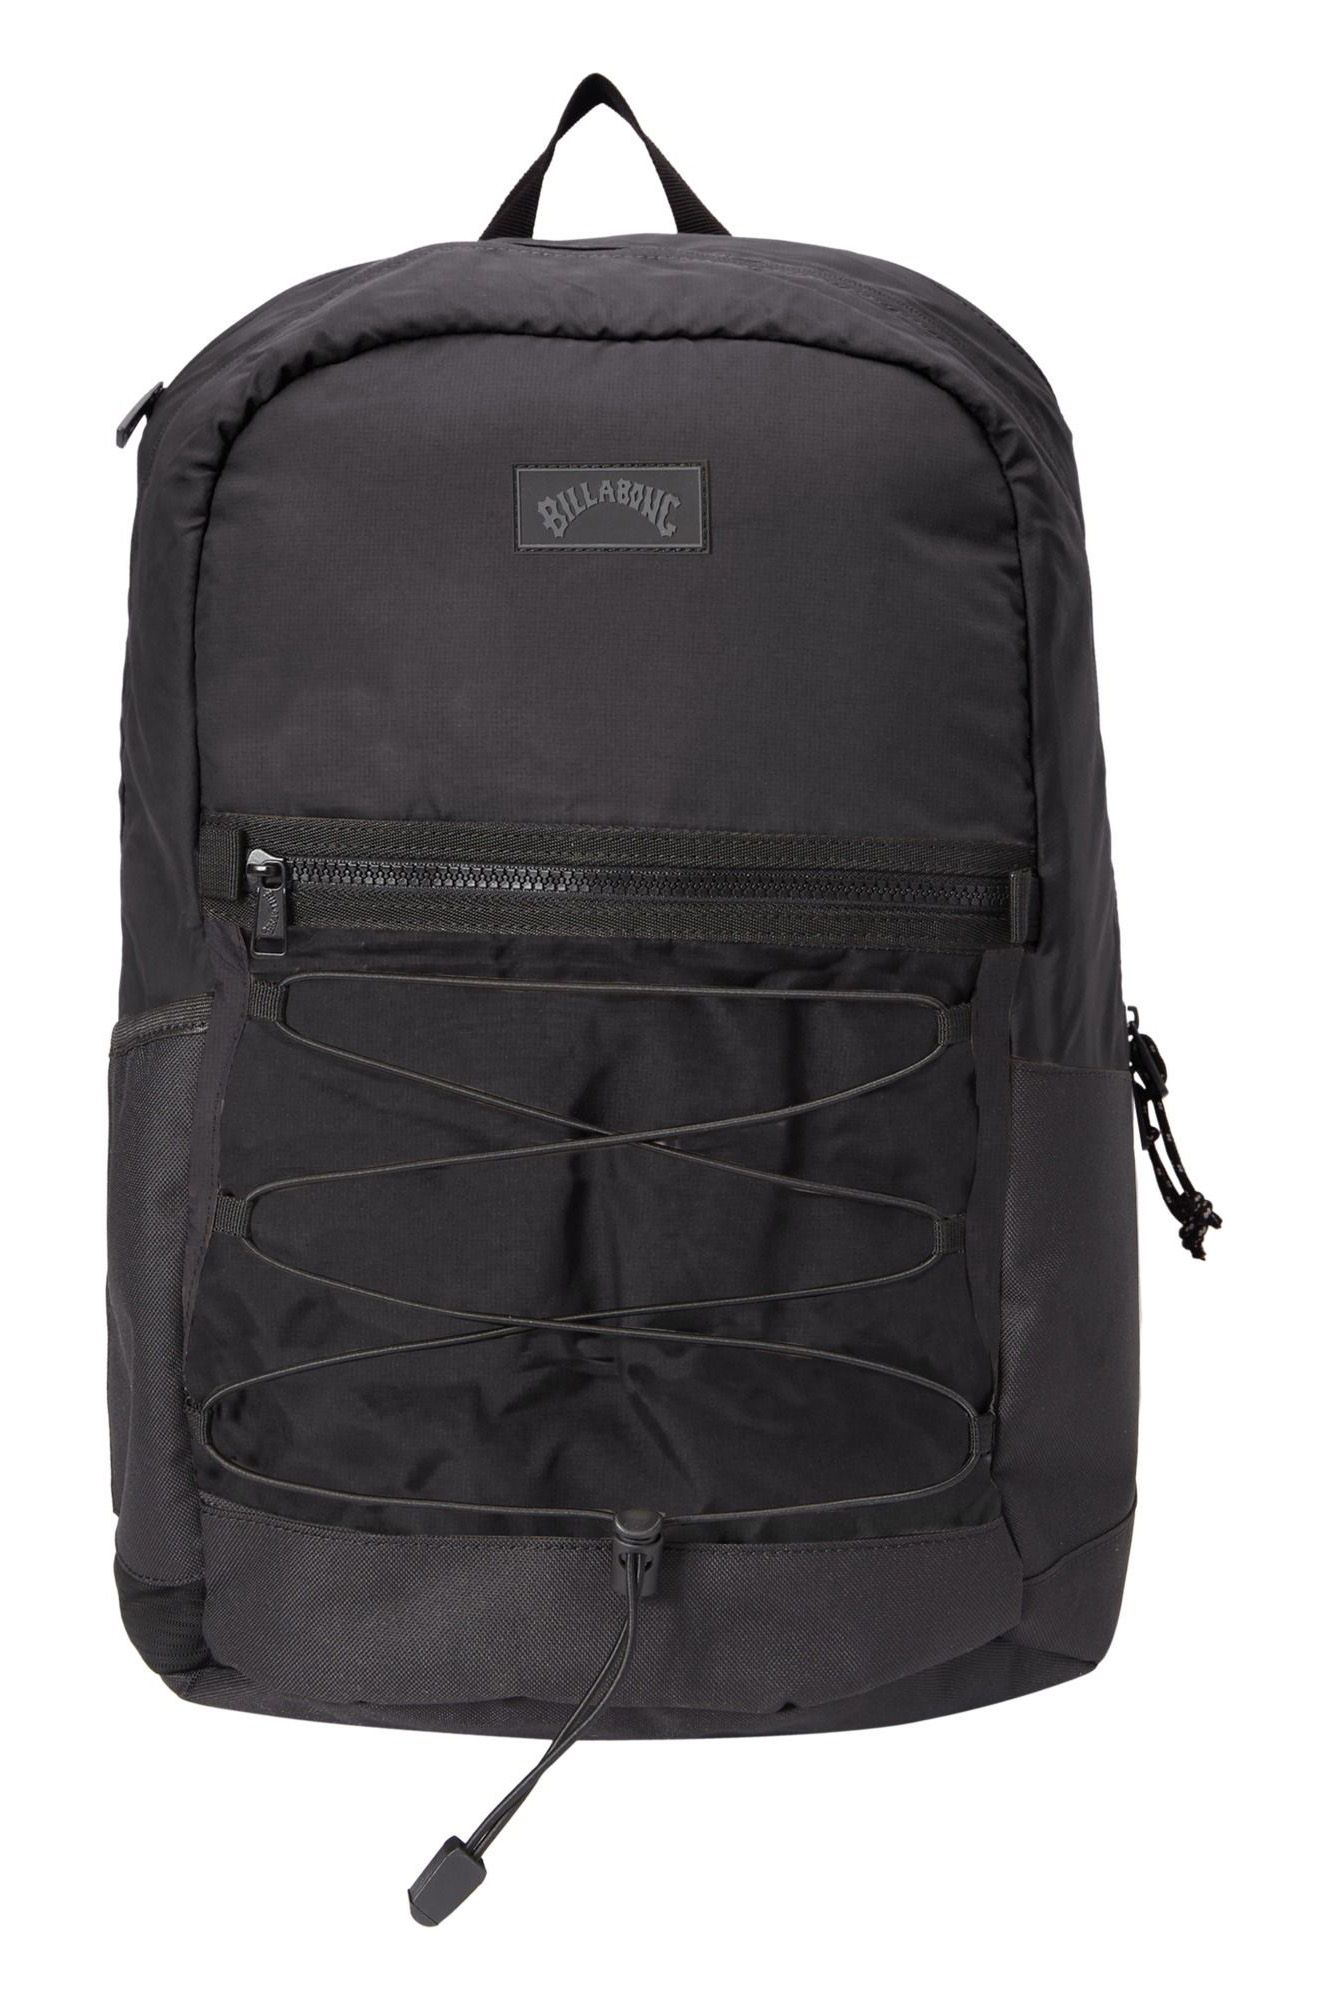 Mochila Billabong AXIS DAY PACK ADVENTURE DIVISION Stealth